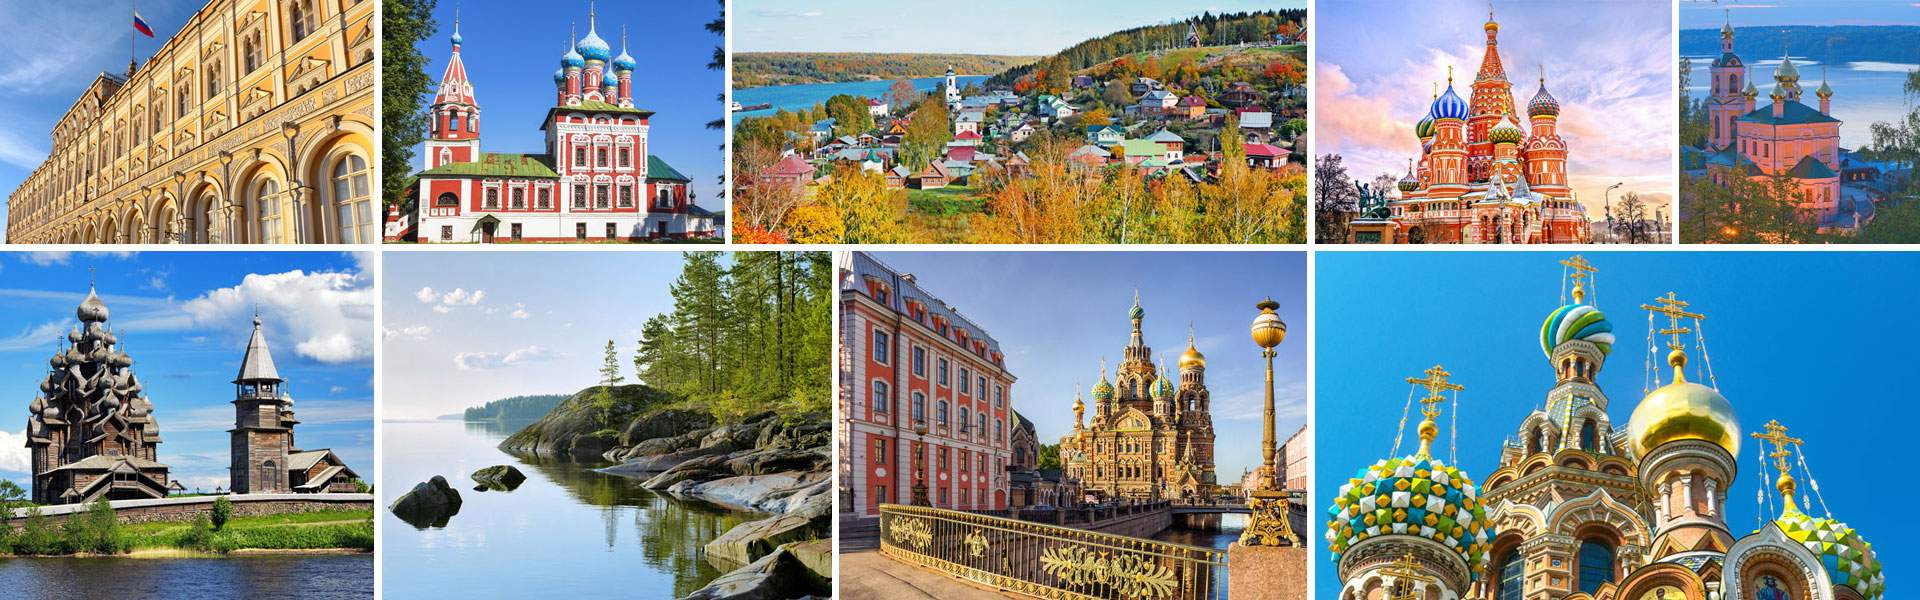 Wendy Wu Tours Russia Holidays